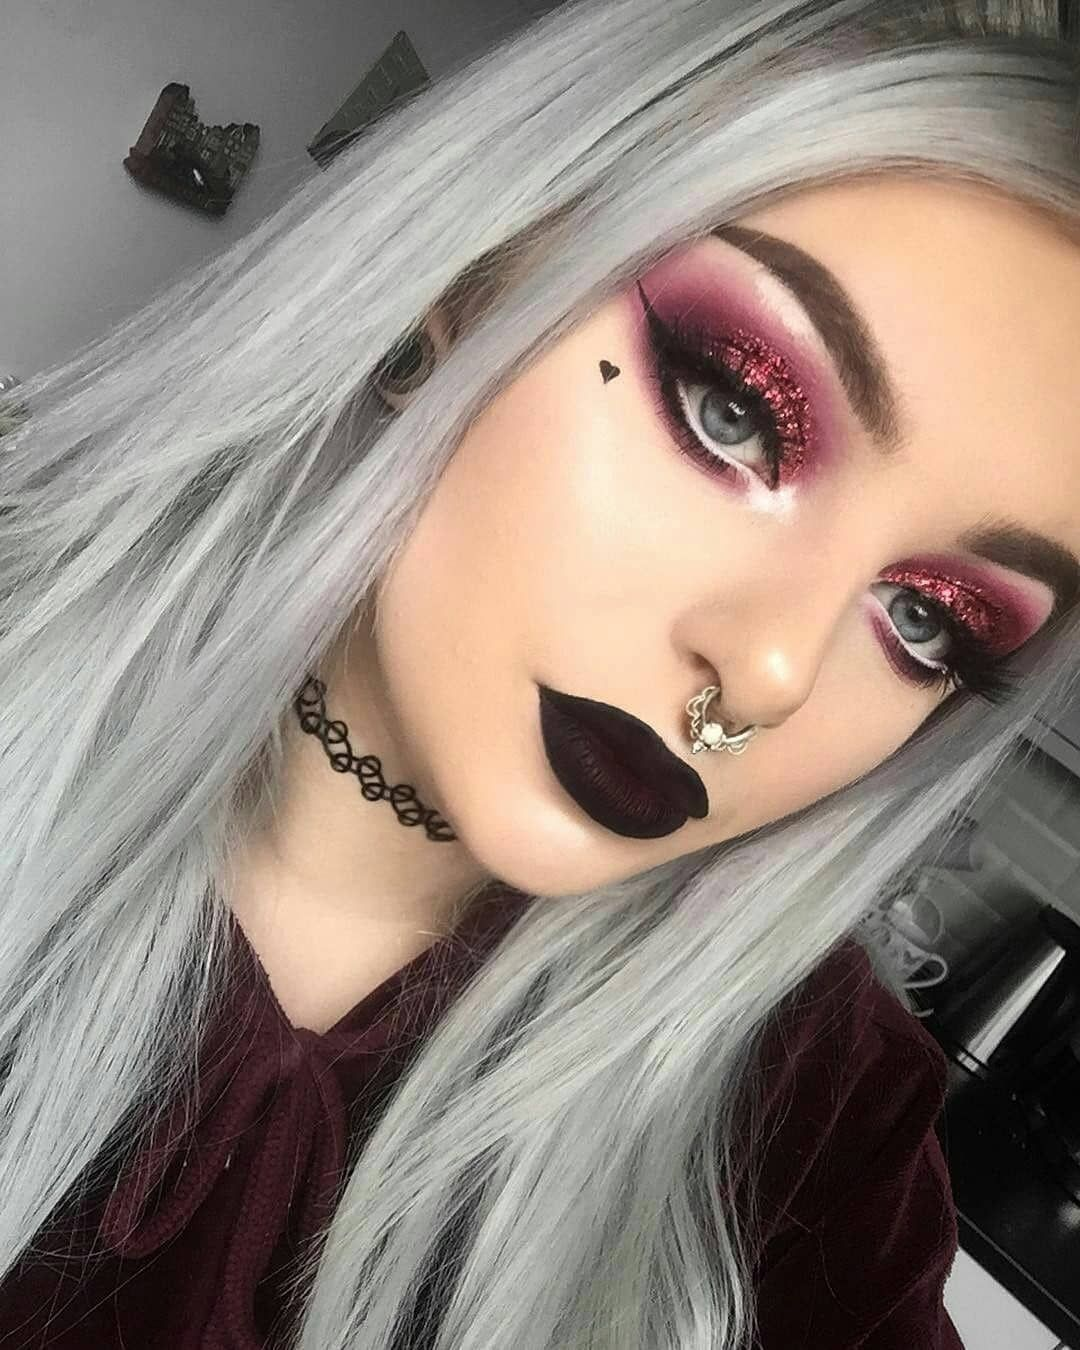 Ag Someone Follow Justgothvibes For More Credi Edgy Makeup Goth Makeup Emo Makeup